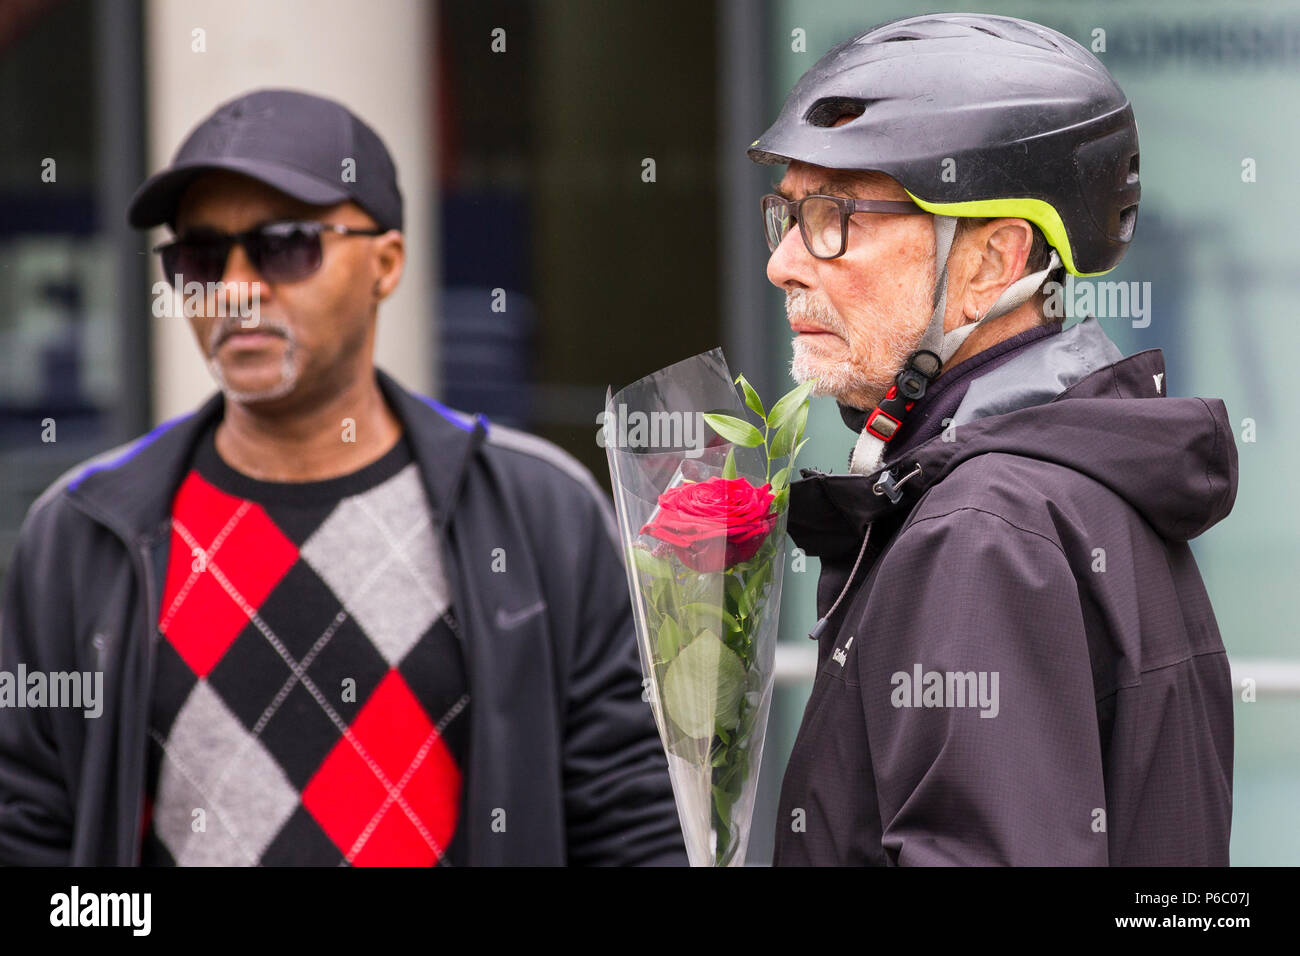 The first anniversary of the 24-storey Grenfell Tower block of public housing flats fire which claimed 72 lives. Man wearing cycling helmet with a red rose, paying his respects at a memorial service  near the tower block.  South Kensington, London, UK, 14th June 2018. - Stock Image